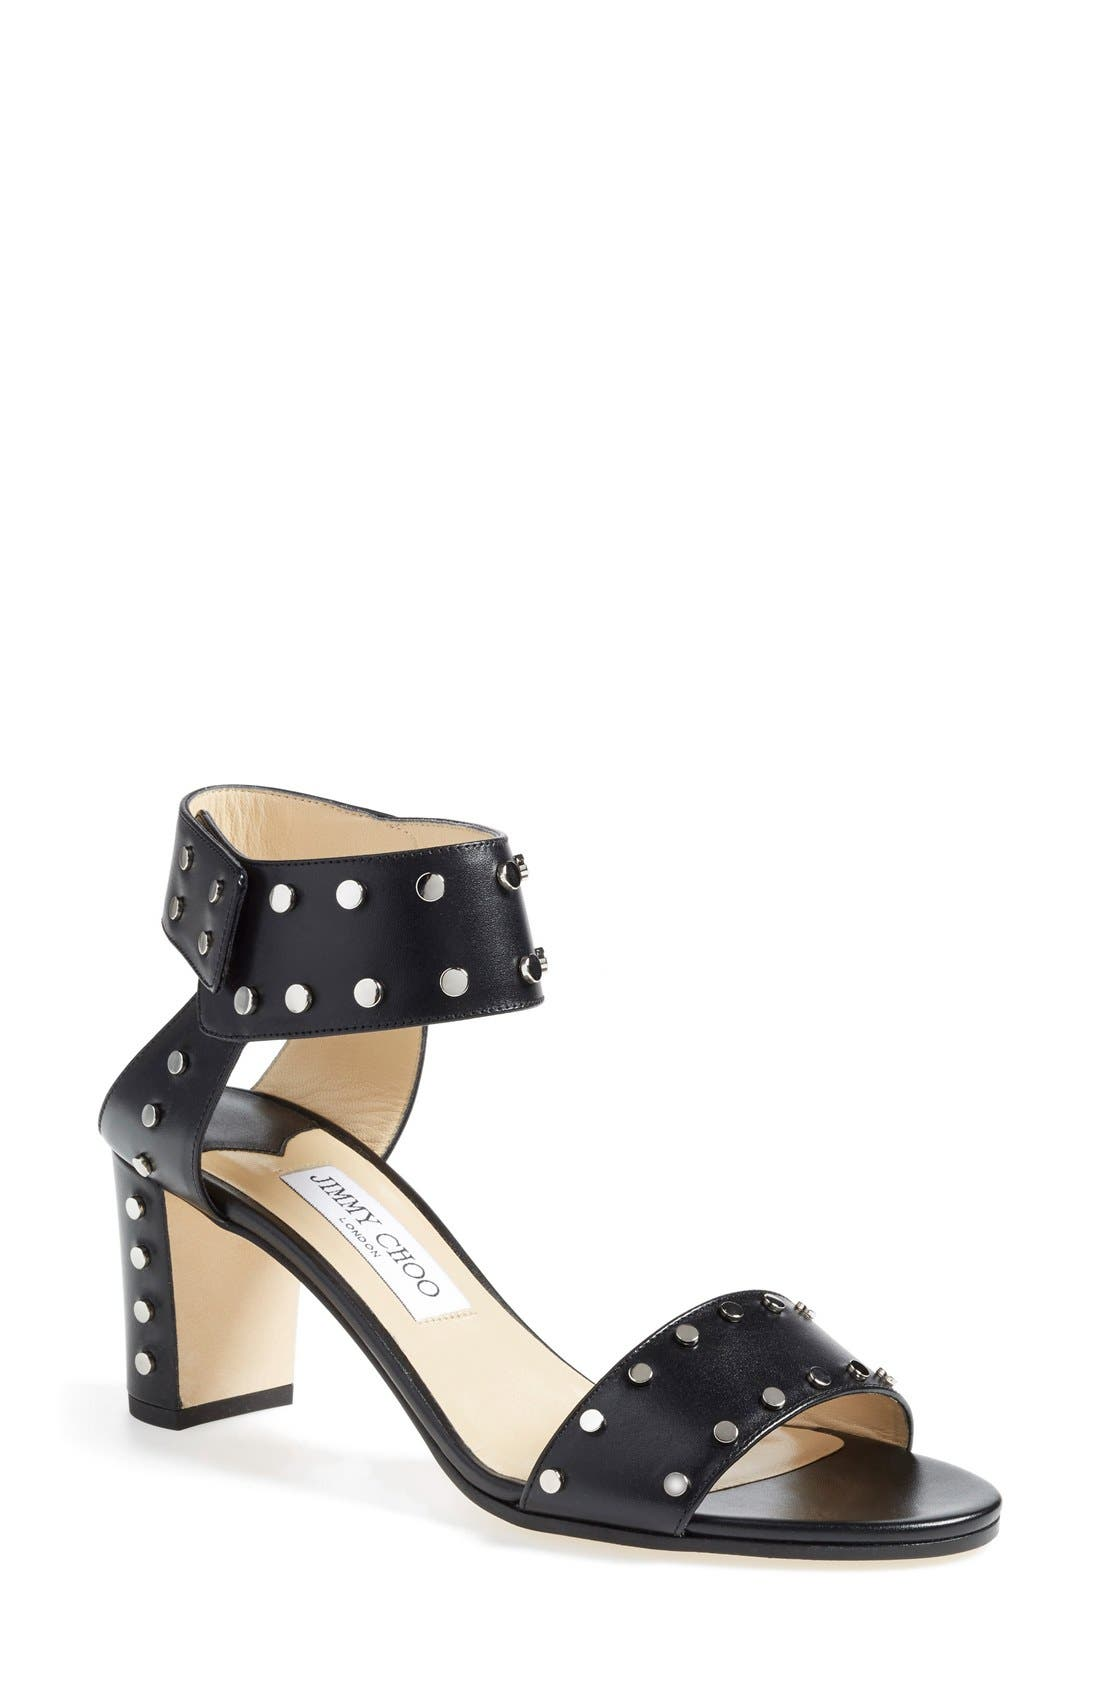 'Veto' Studded Sandal,                             Main thumbnail 1, color,                             001